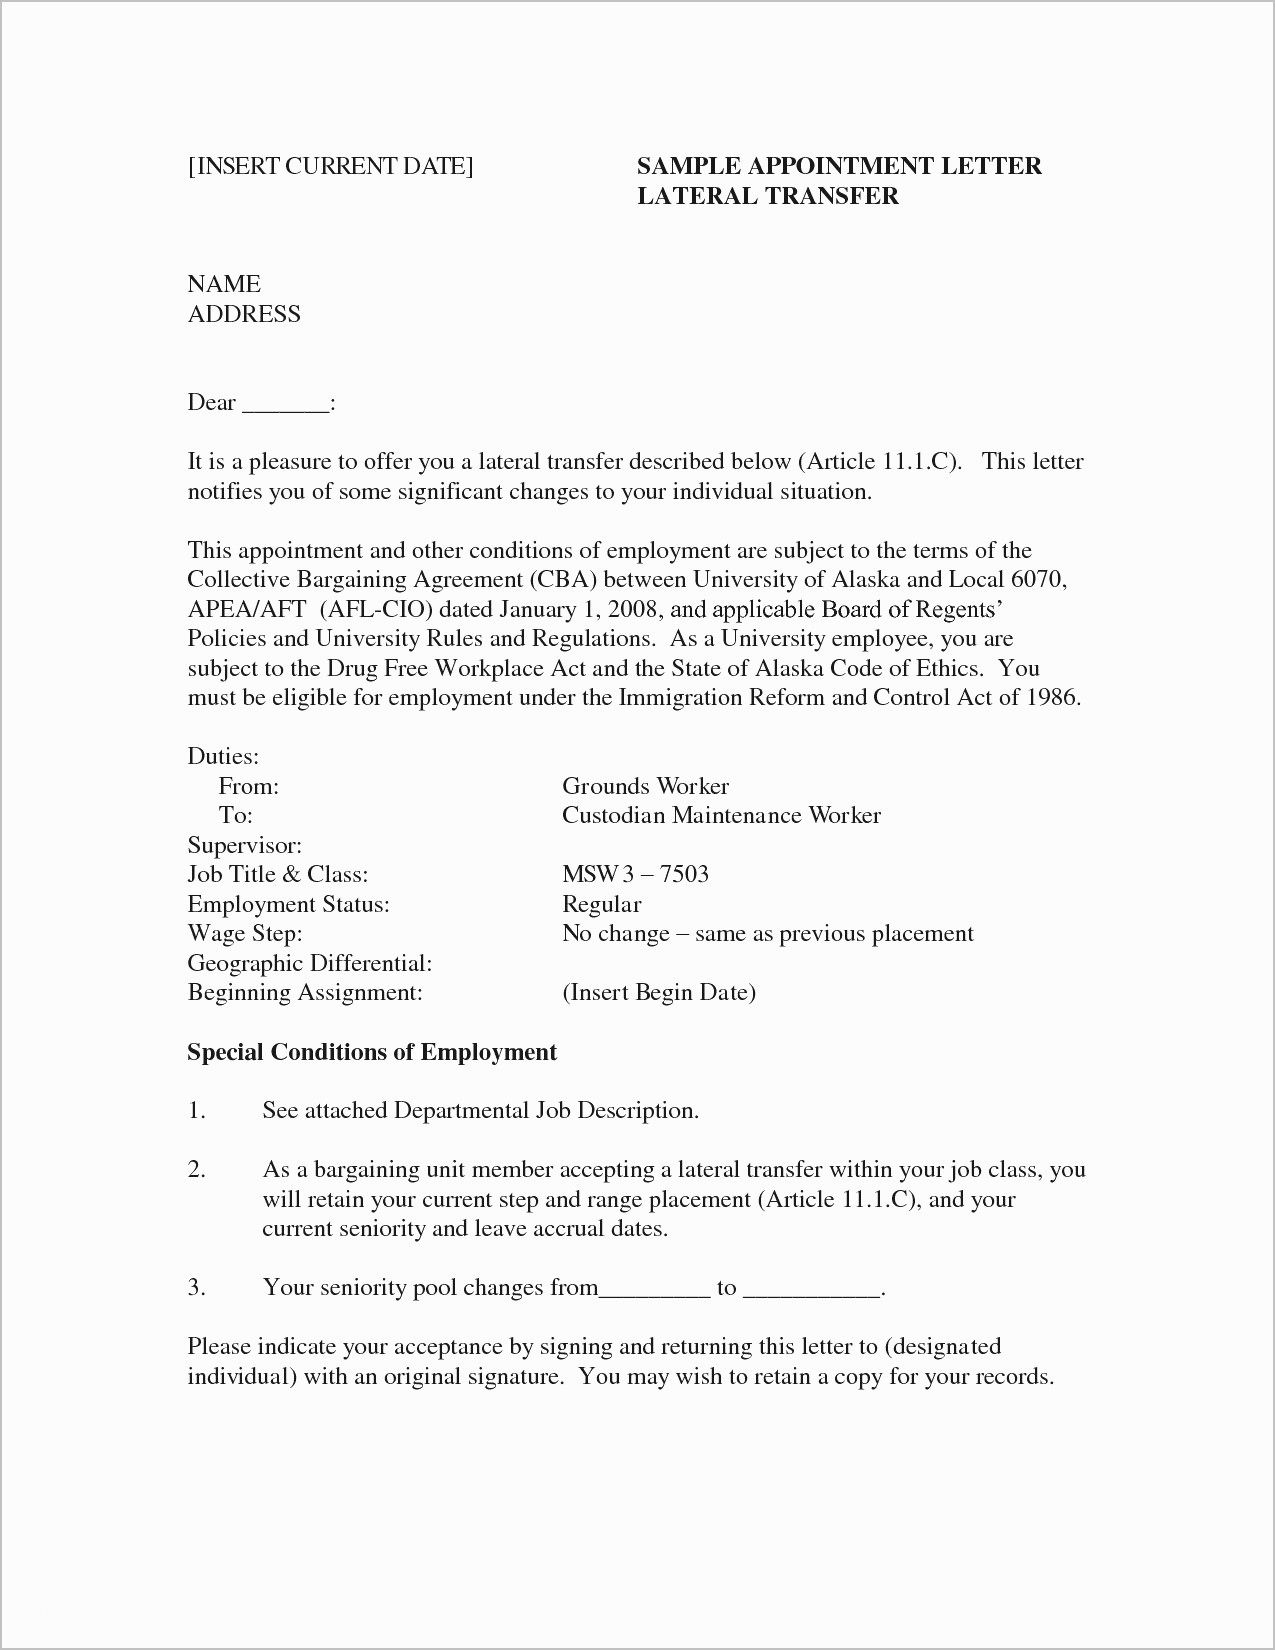 Personal Trainer Waiver Form Template Beautiful Personal Trainer Resume Free Resume For Entry Level Awesome 22